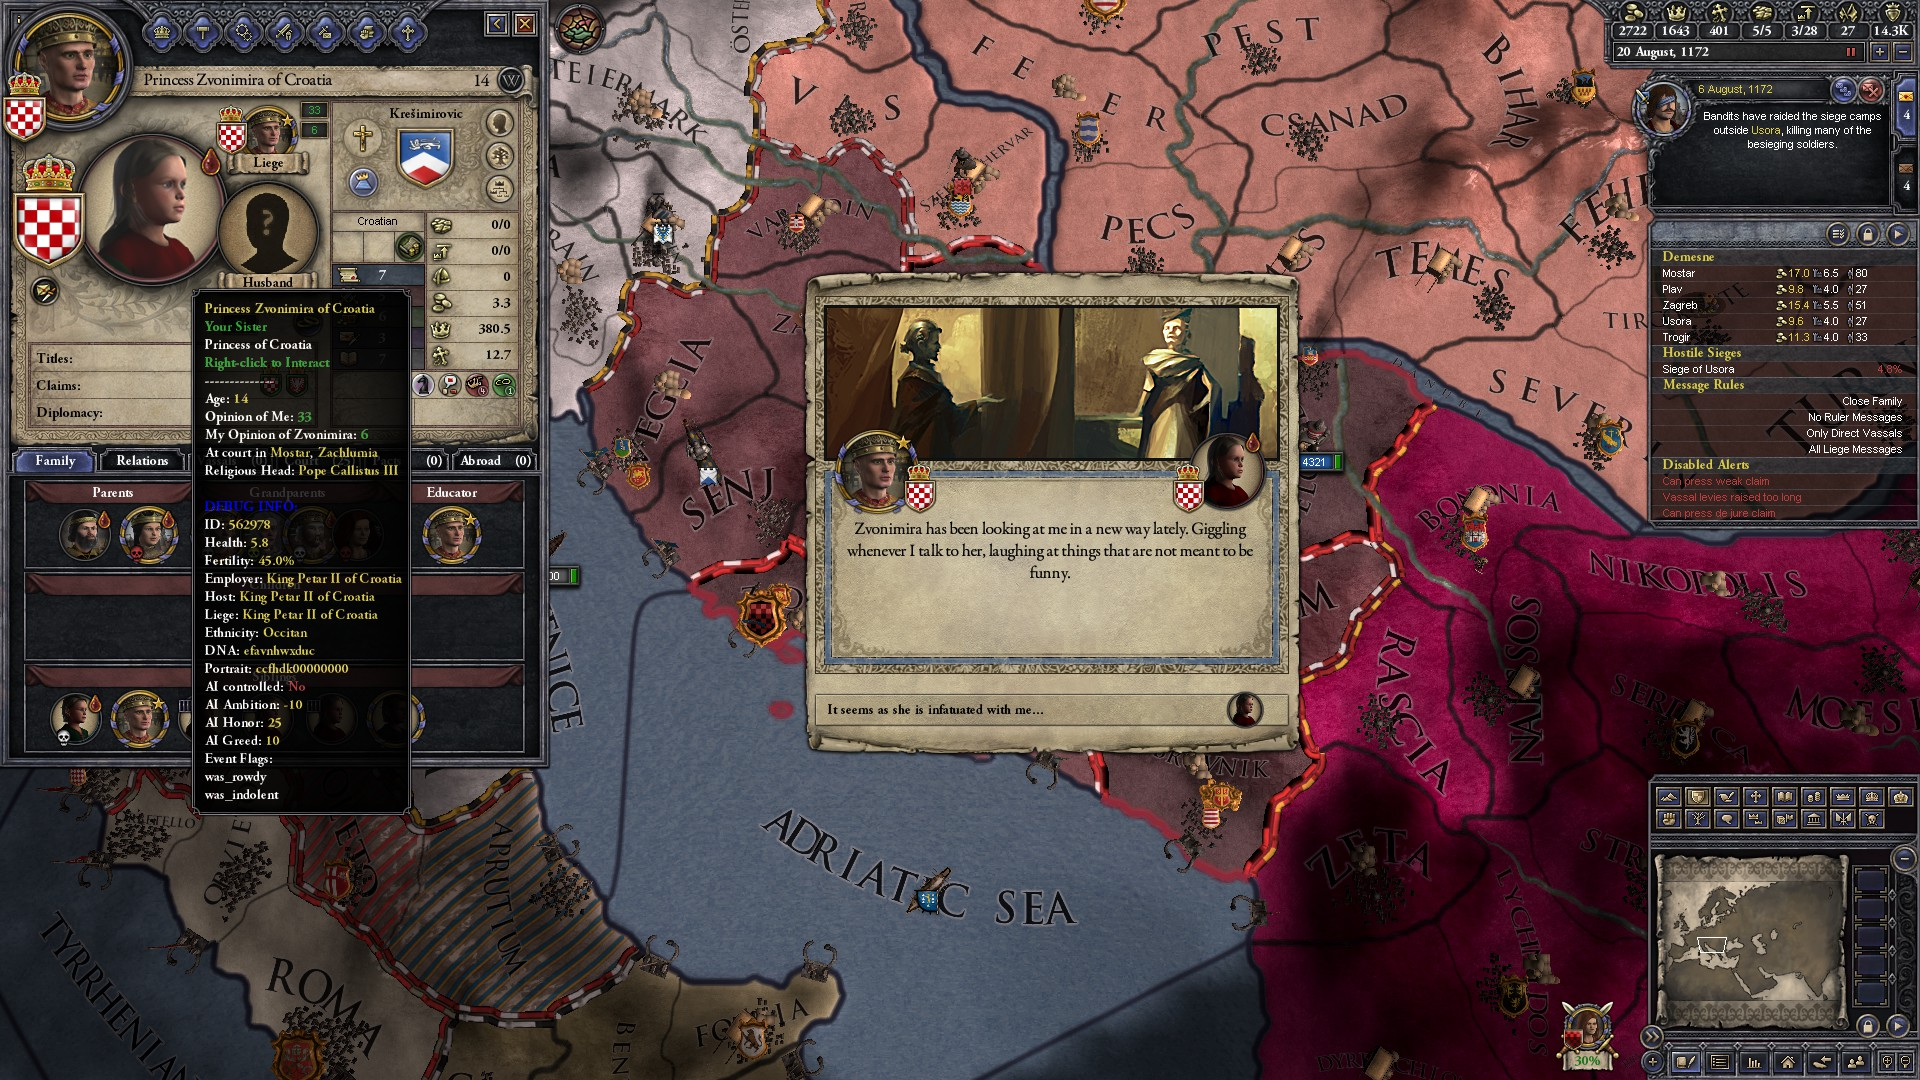 The first rule of incest: Start 'em young  : CrusaderKings